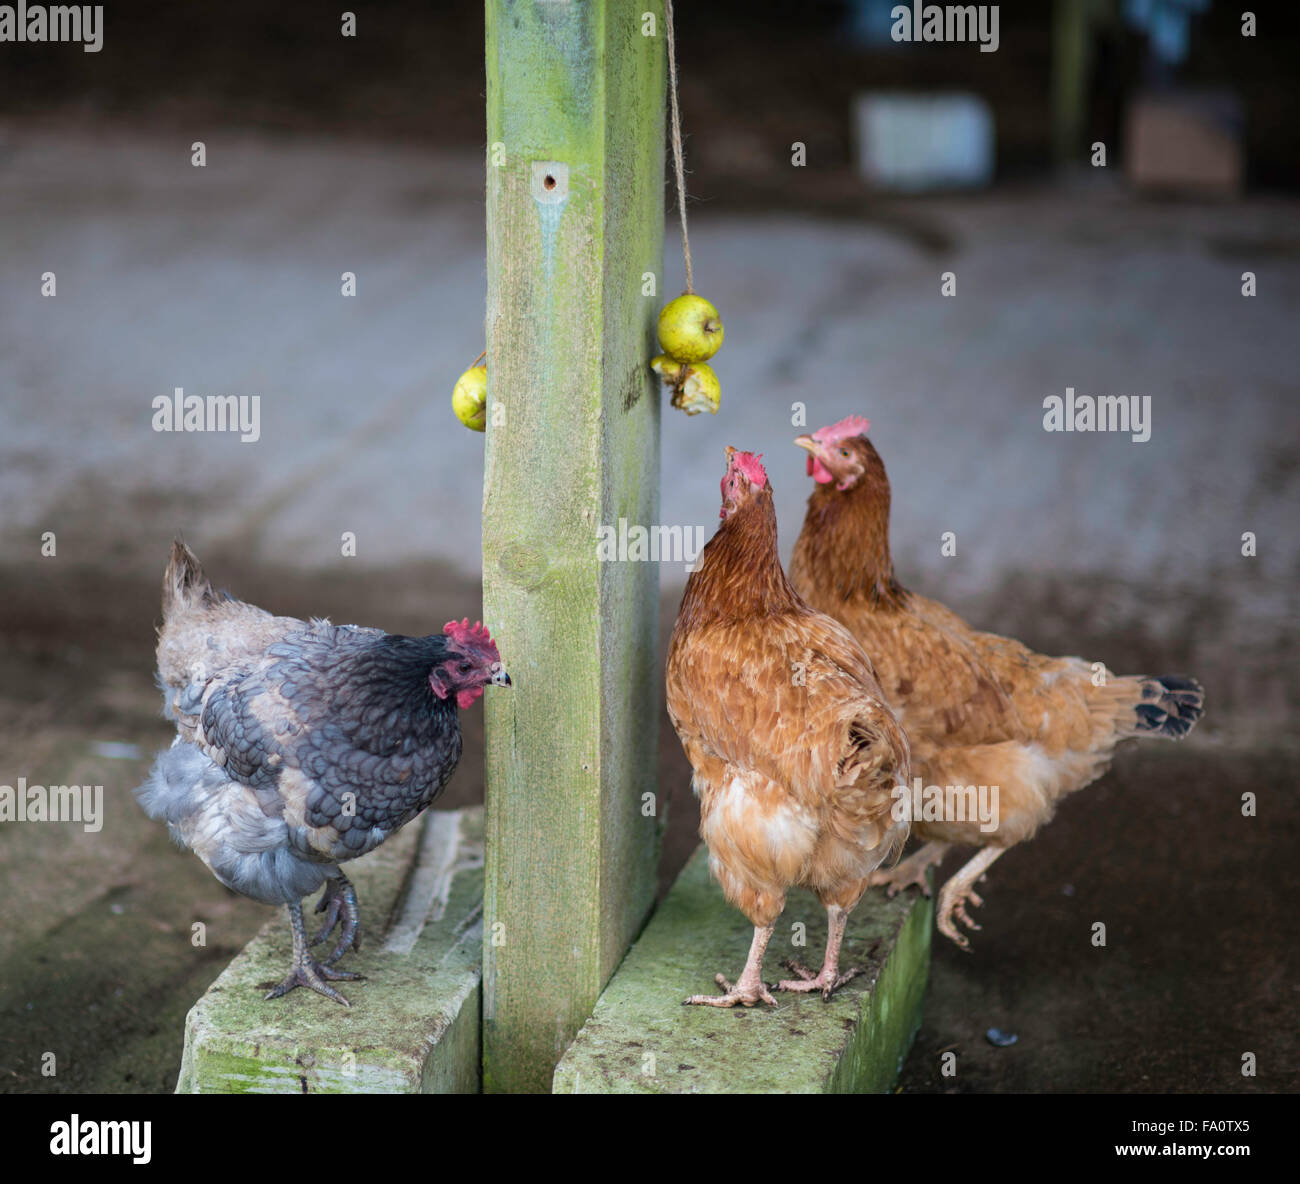 Free range chickens in a barn Stock Photo